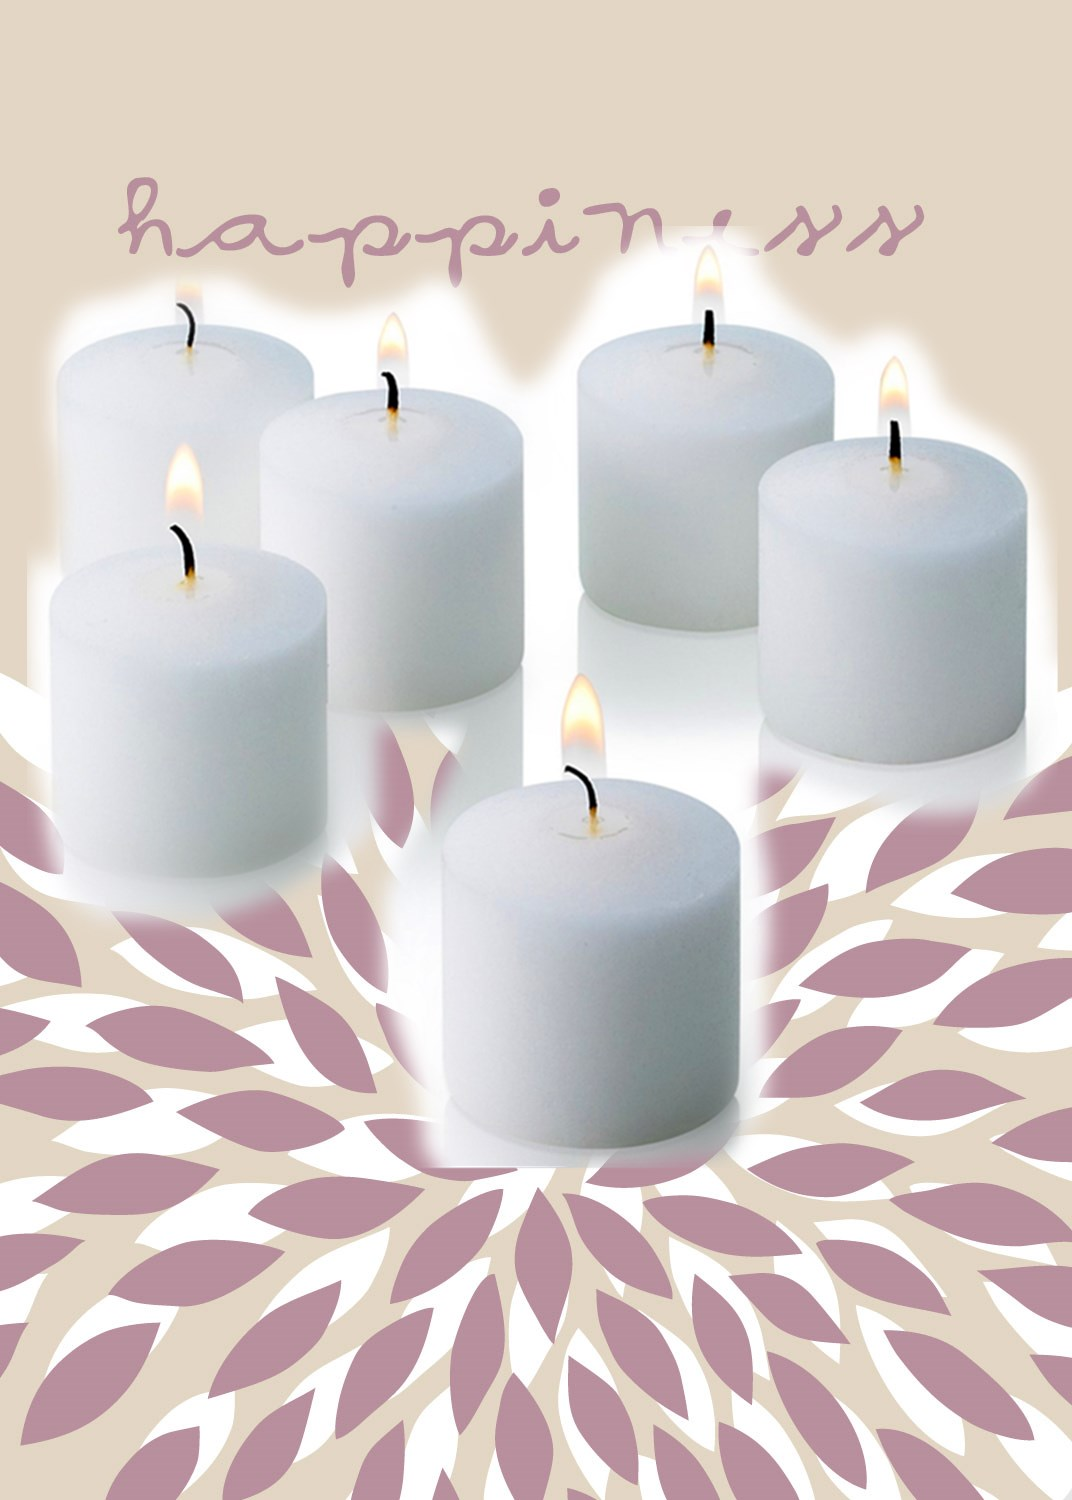 Trueliving Votives Unscented 6 pack 0.84oz / 24g (each)